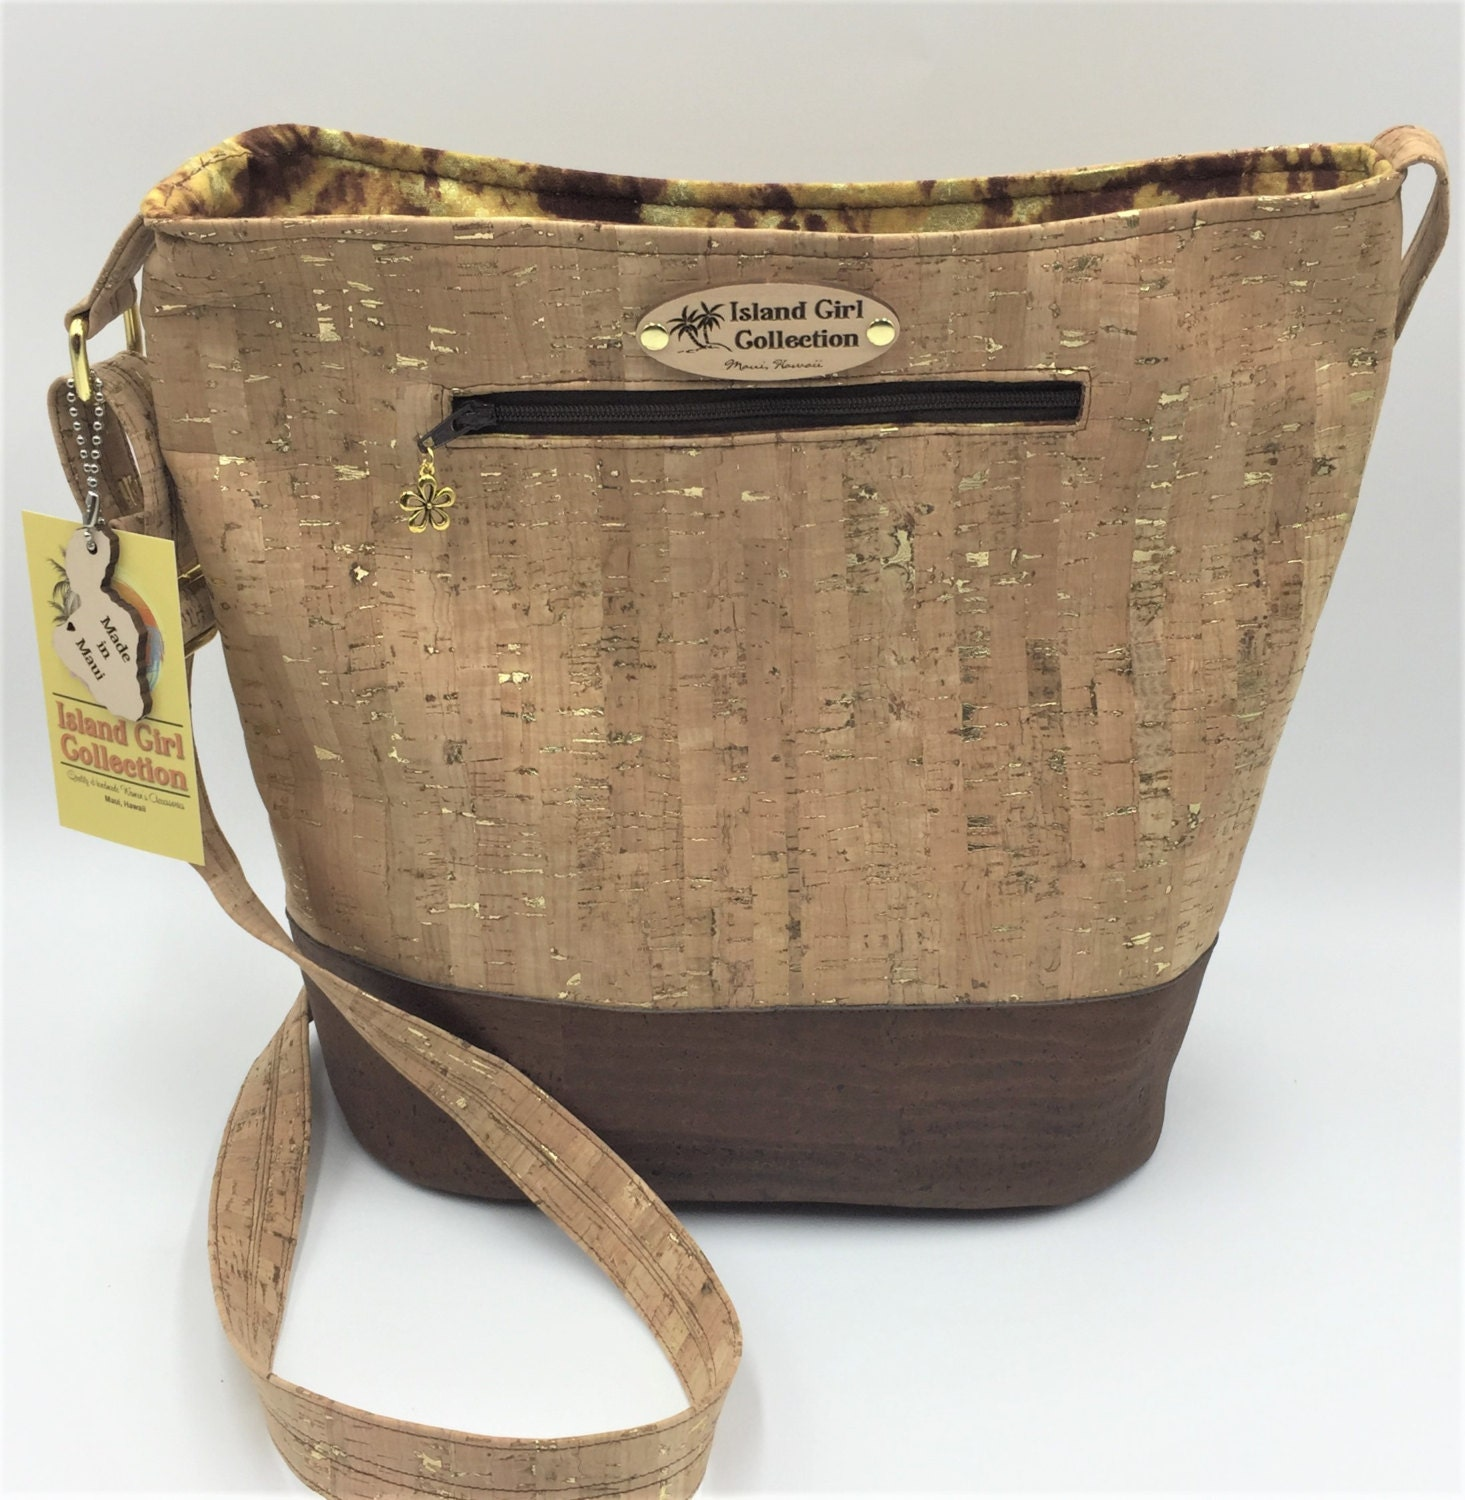 79f47f85f Large Handbag, Shoulder Bag, Bucket Bag, Purse in Brown & Light ...